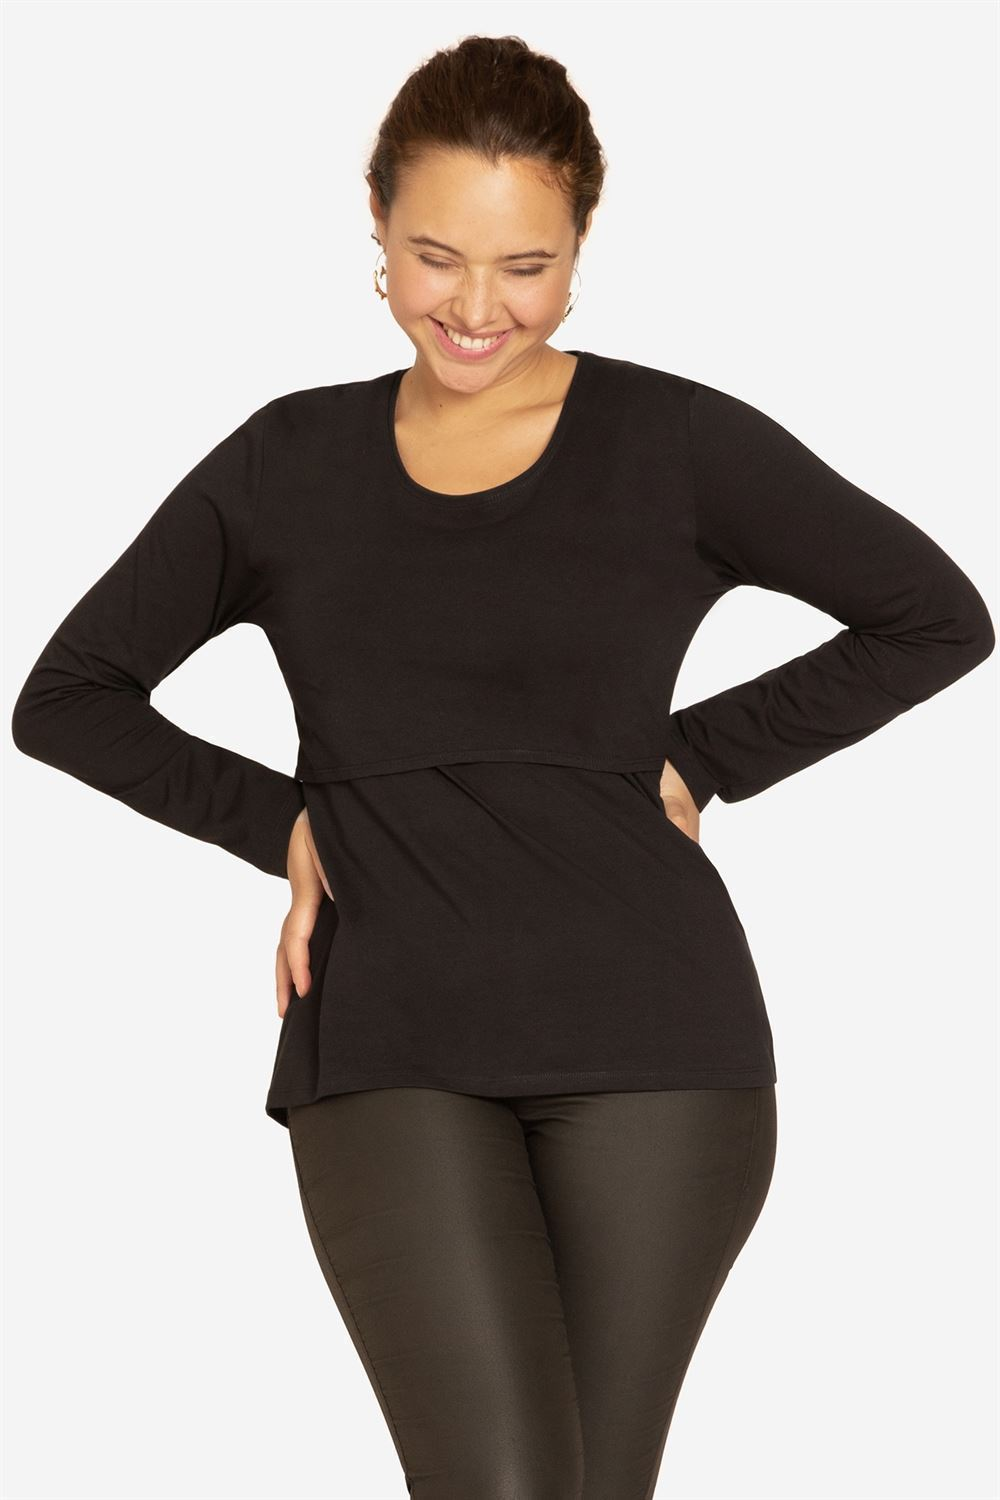 Black classic nursing top made of organic cotton - seen on plus size model